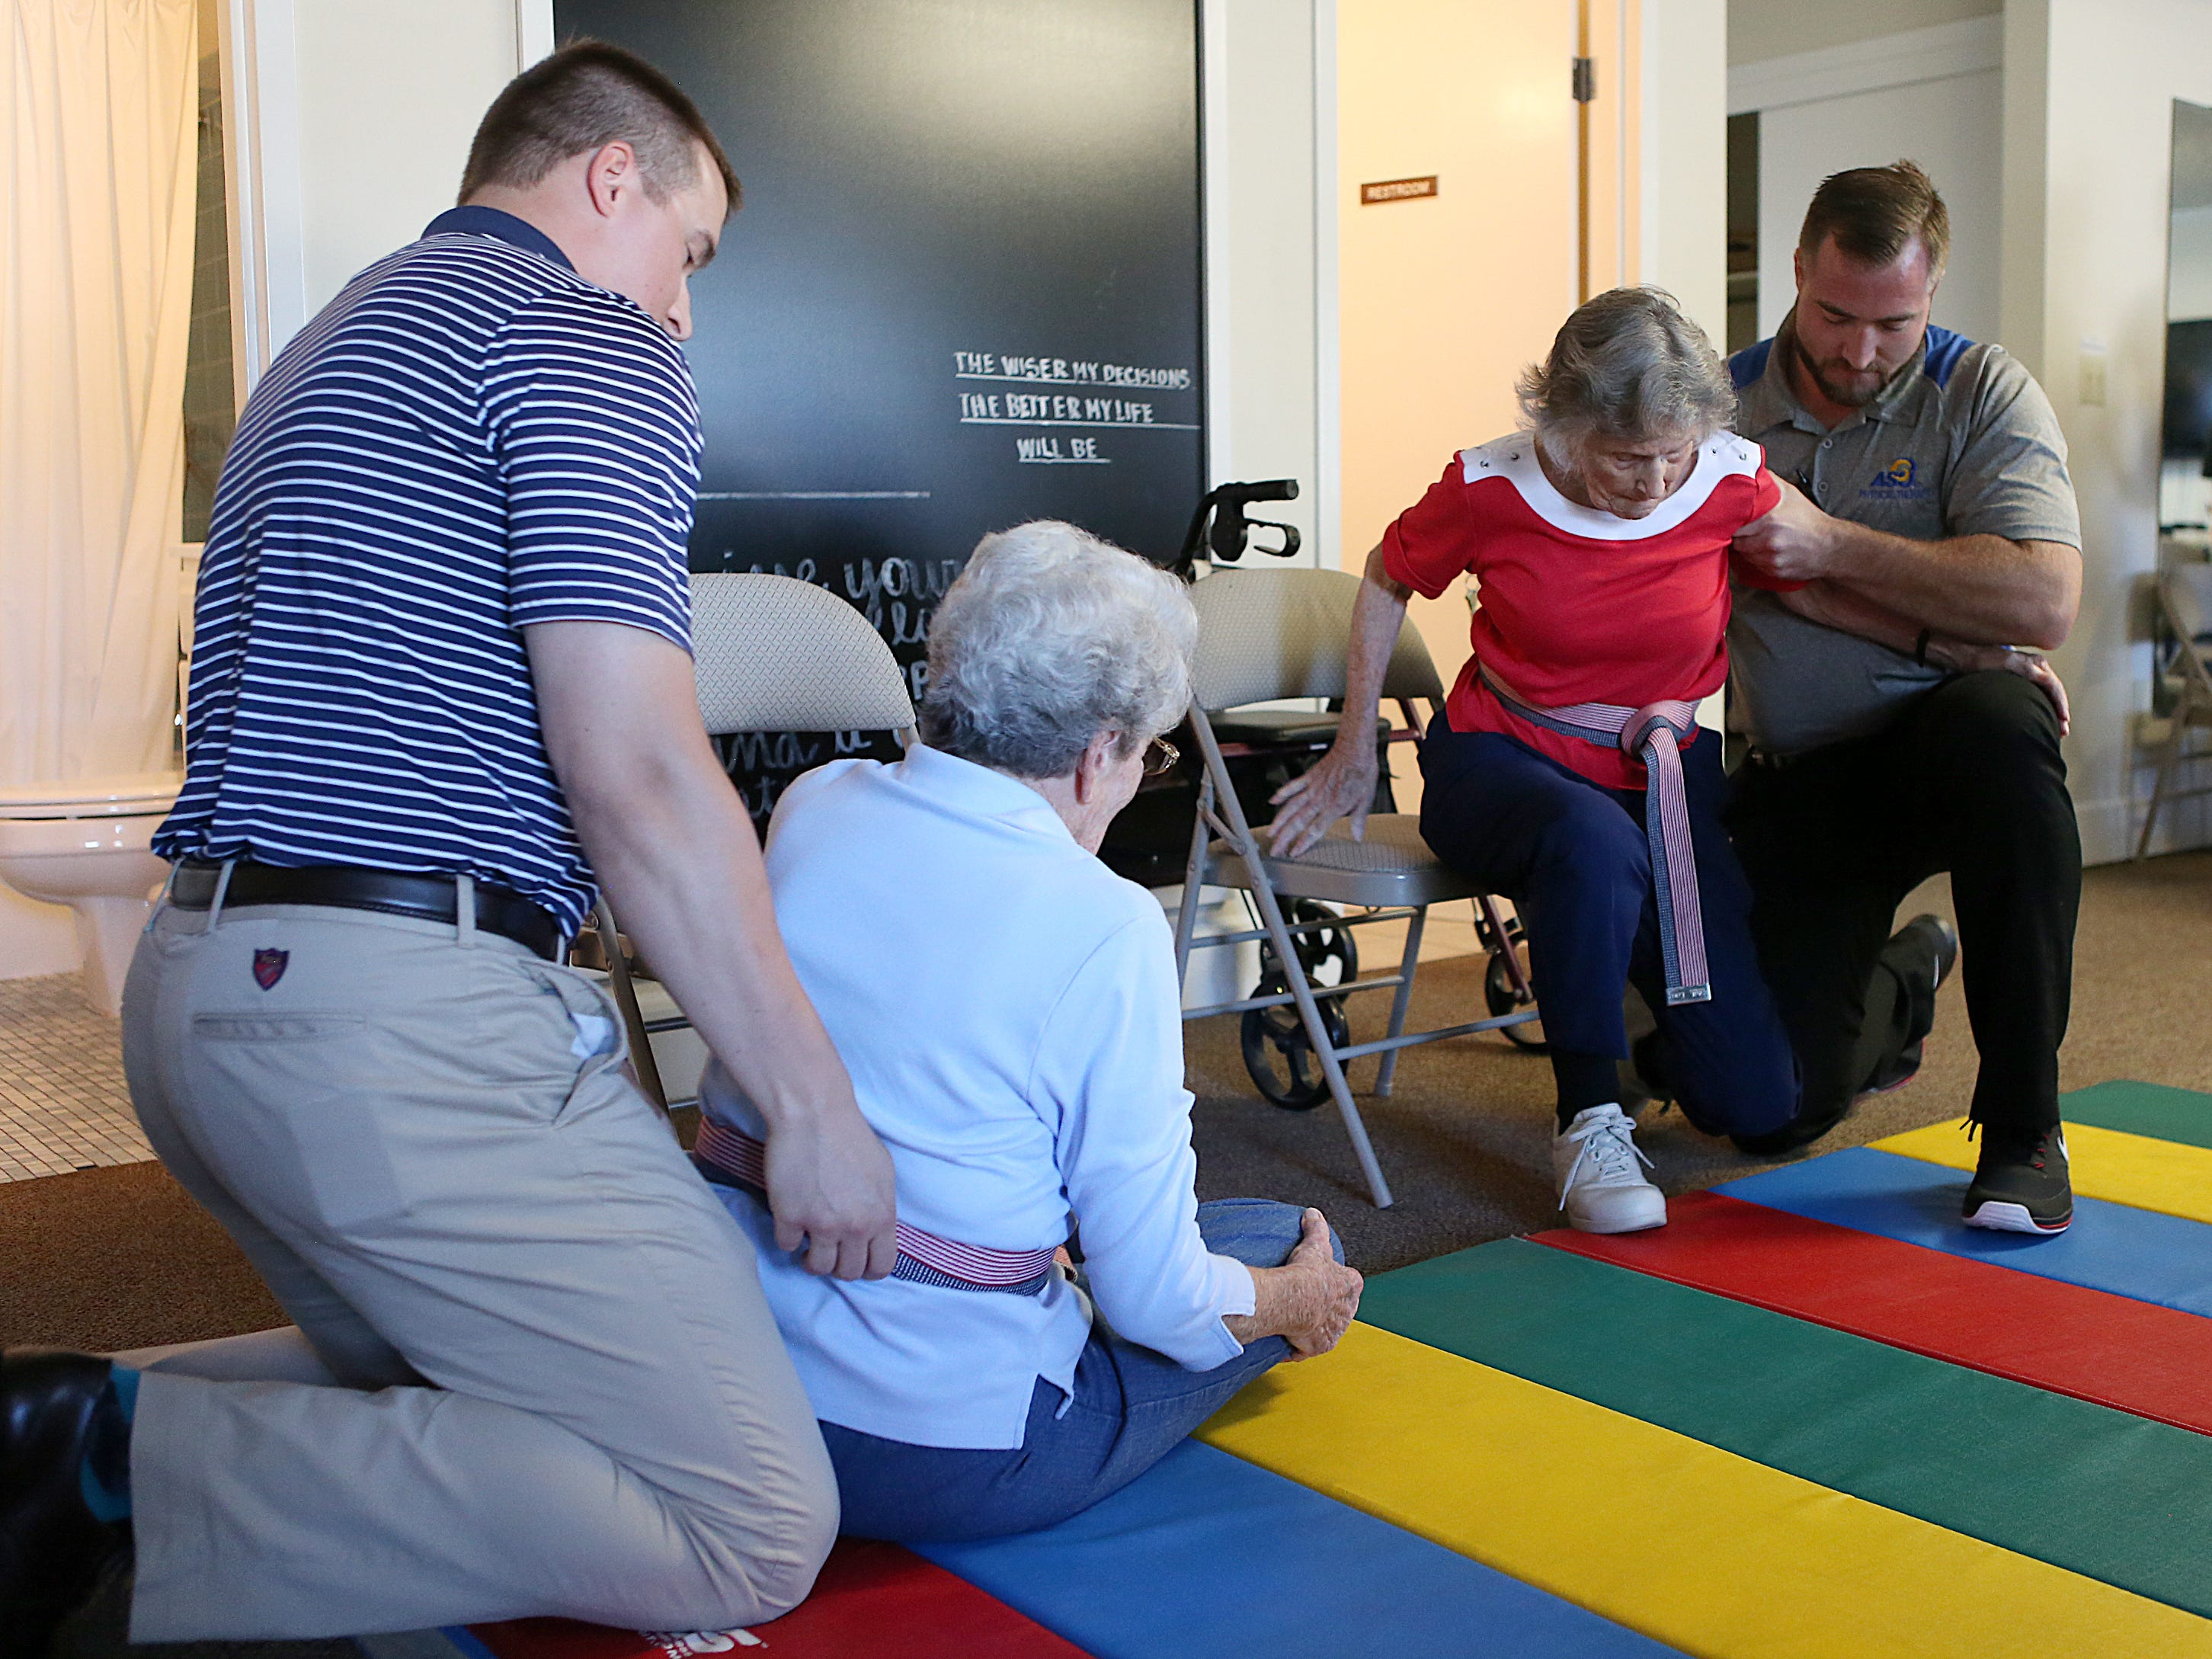 Residents June Heck (left) and Barbara Marshal are helped onto a mat  by Tyler Althof (left) and Dane Grimes, physical therapy students from Angelo State University down during a a Balance and Fall Risk Reduction Program for seniors at Baptist Retirement Community Monday, Oct. 1, 2018.